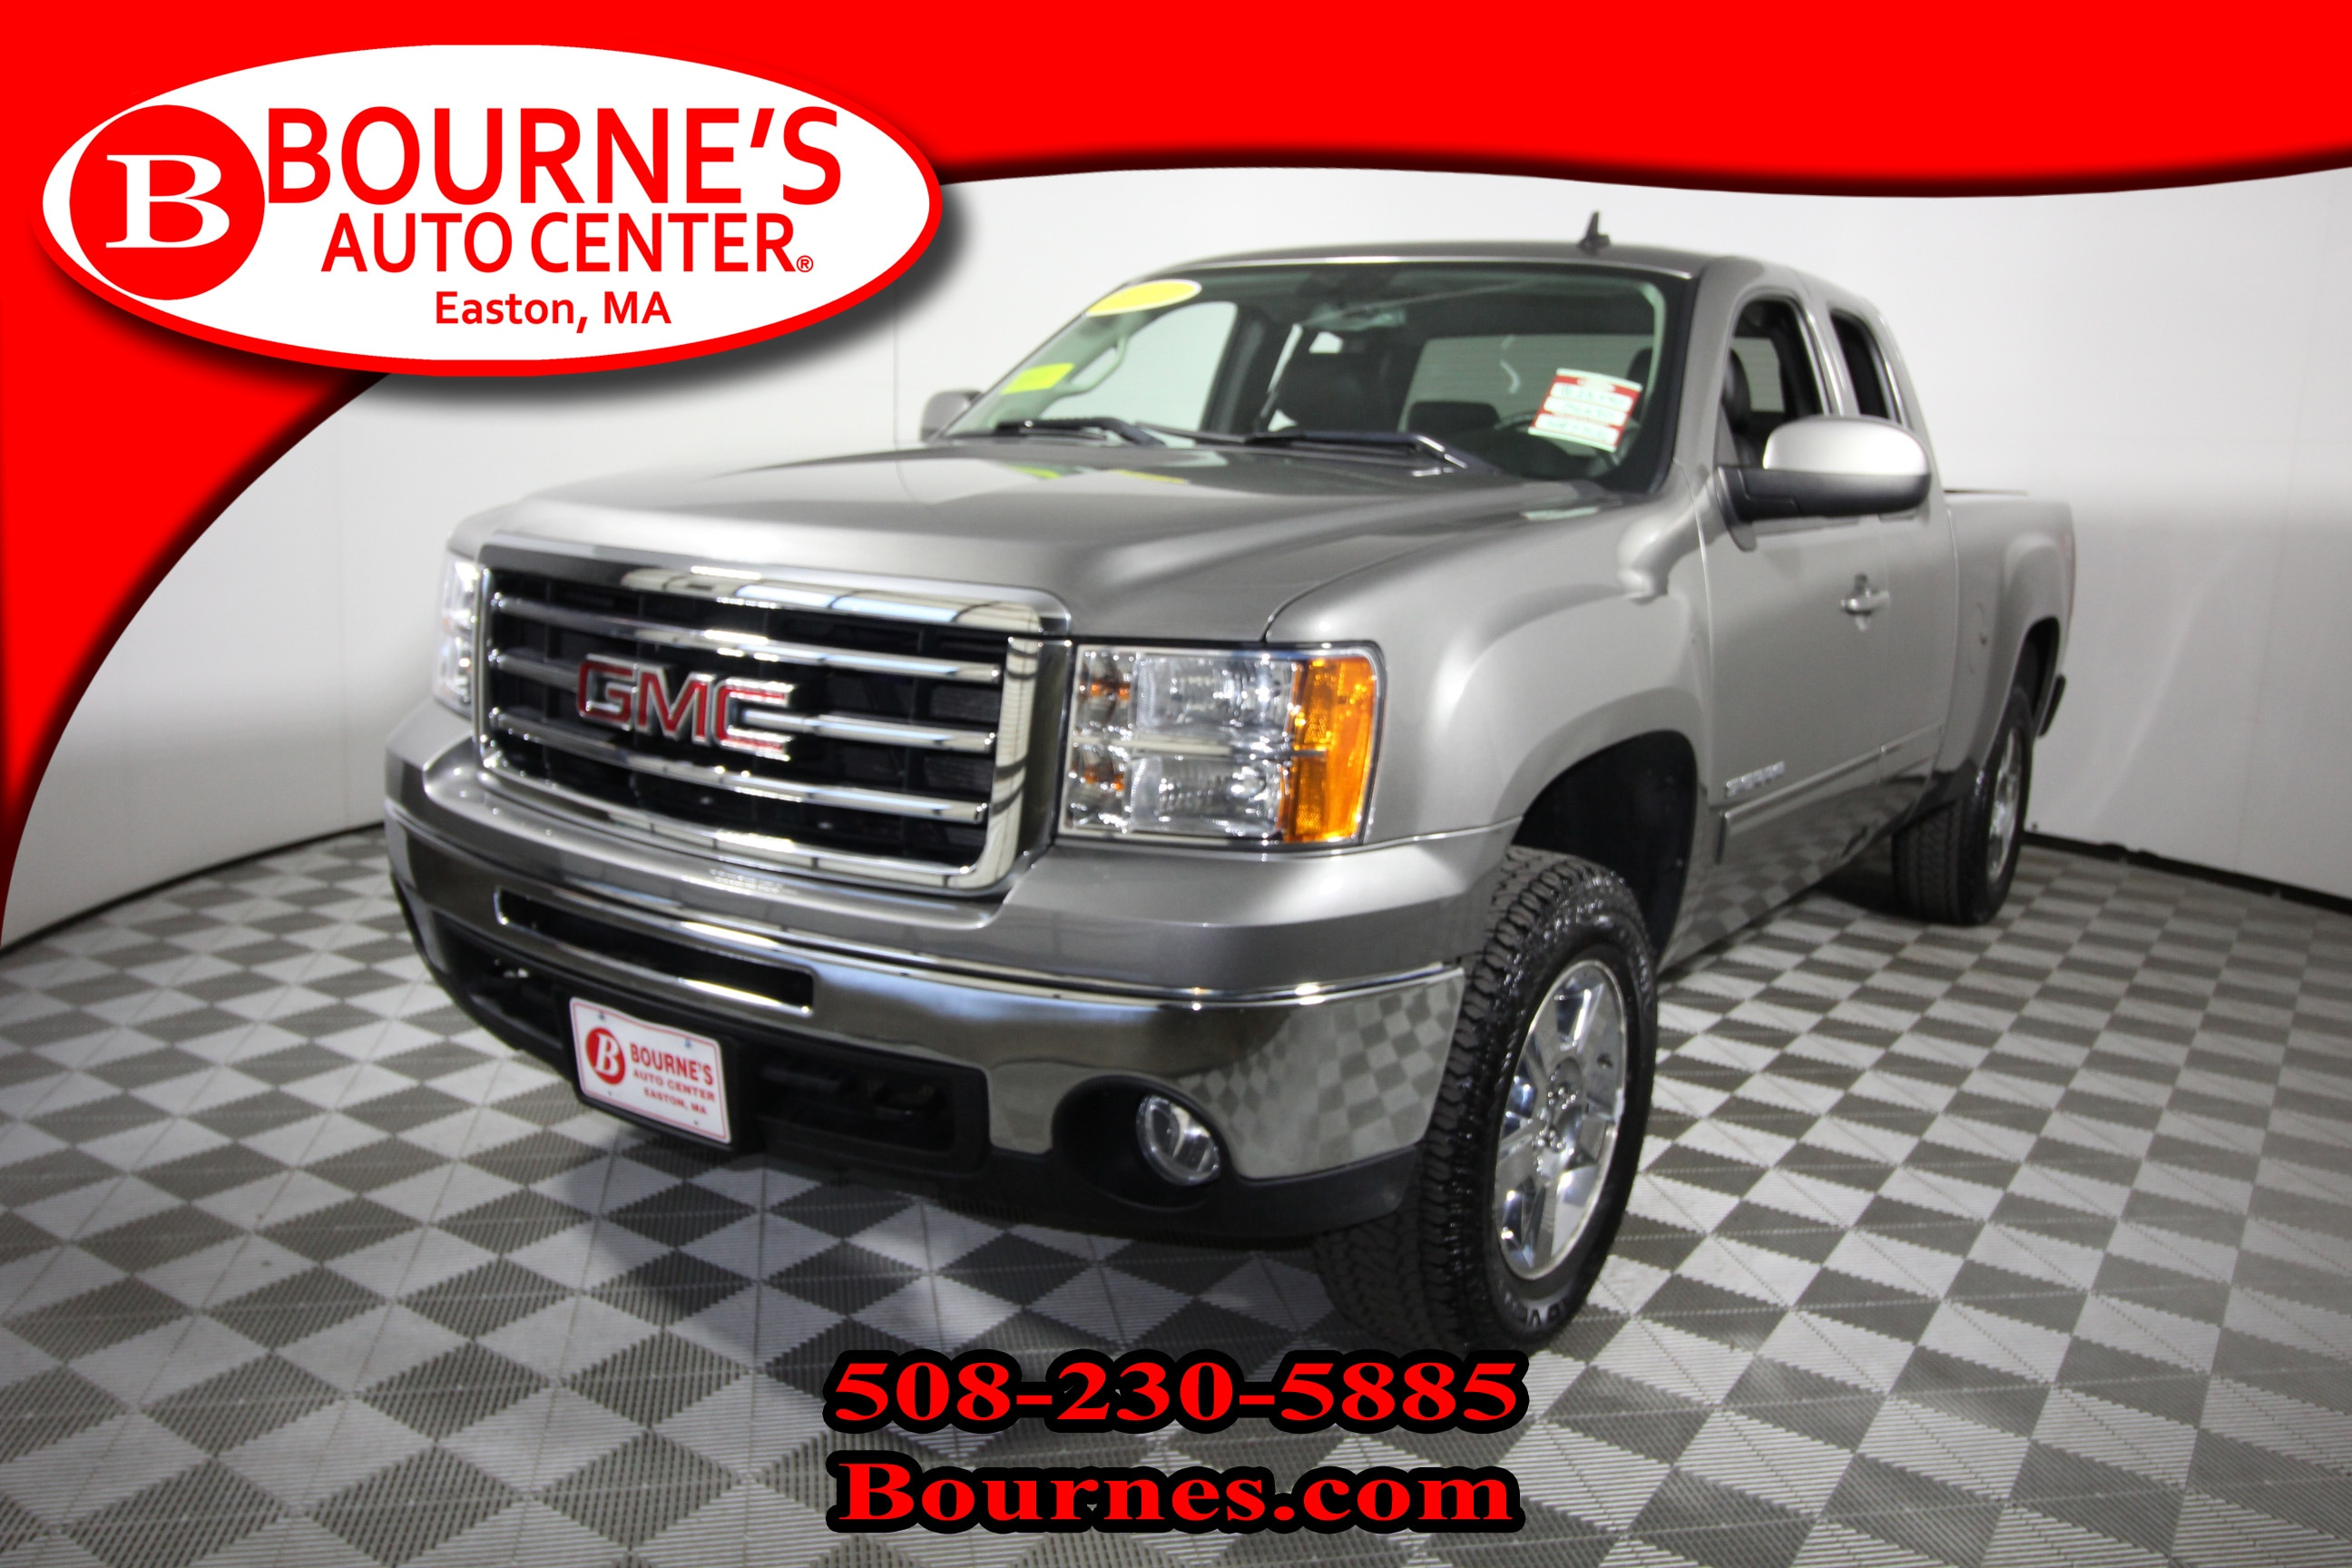 2012 GMC Extended Cab Sierra 1500 4WD SLT w/ Leather And Heated Front Seats. Truck Extended Cab